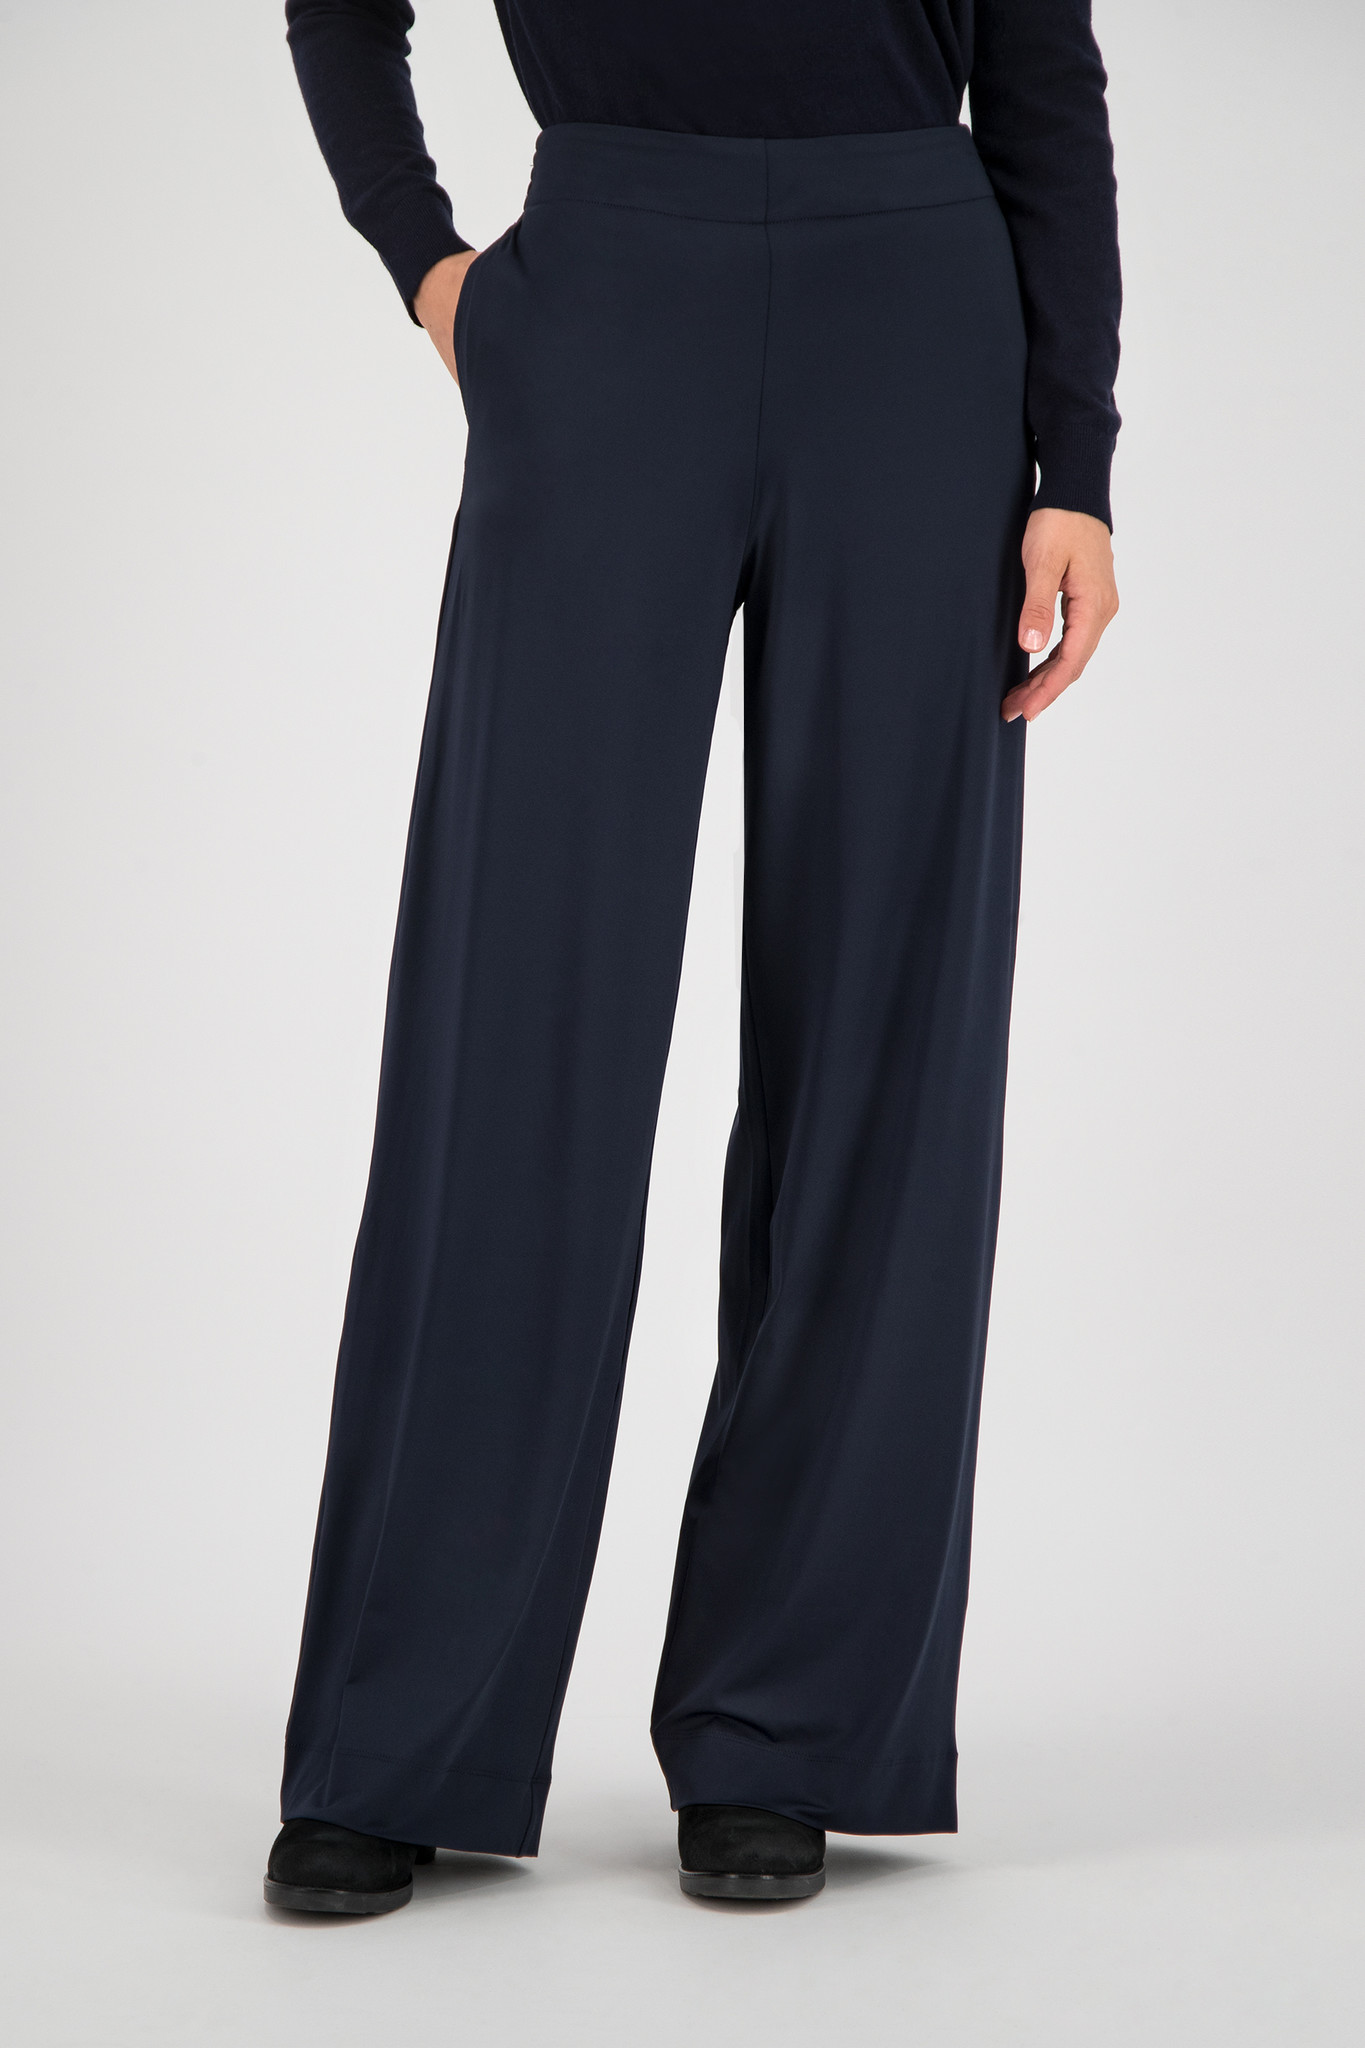 SYLVER Silky Jersey Trousers Flared - Dark Blue